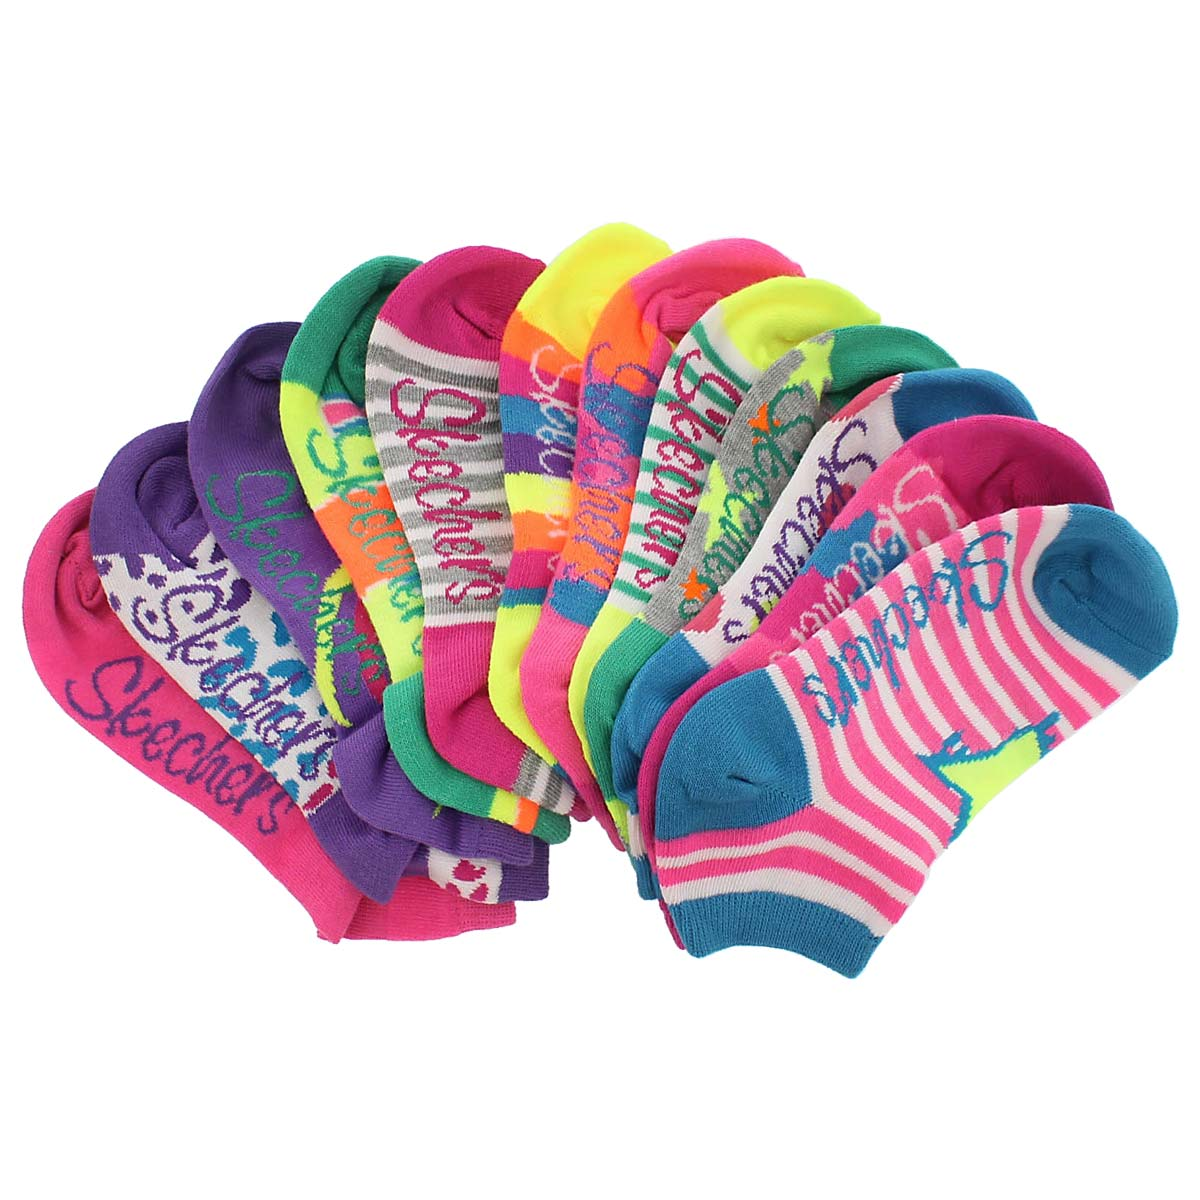 Socquettes LOW CUT NO TERRY, multi, 6 p., filles